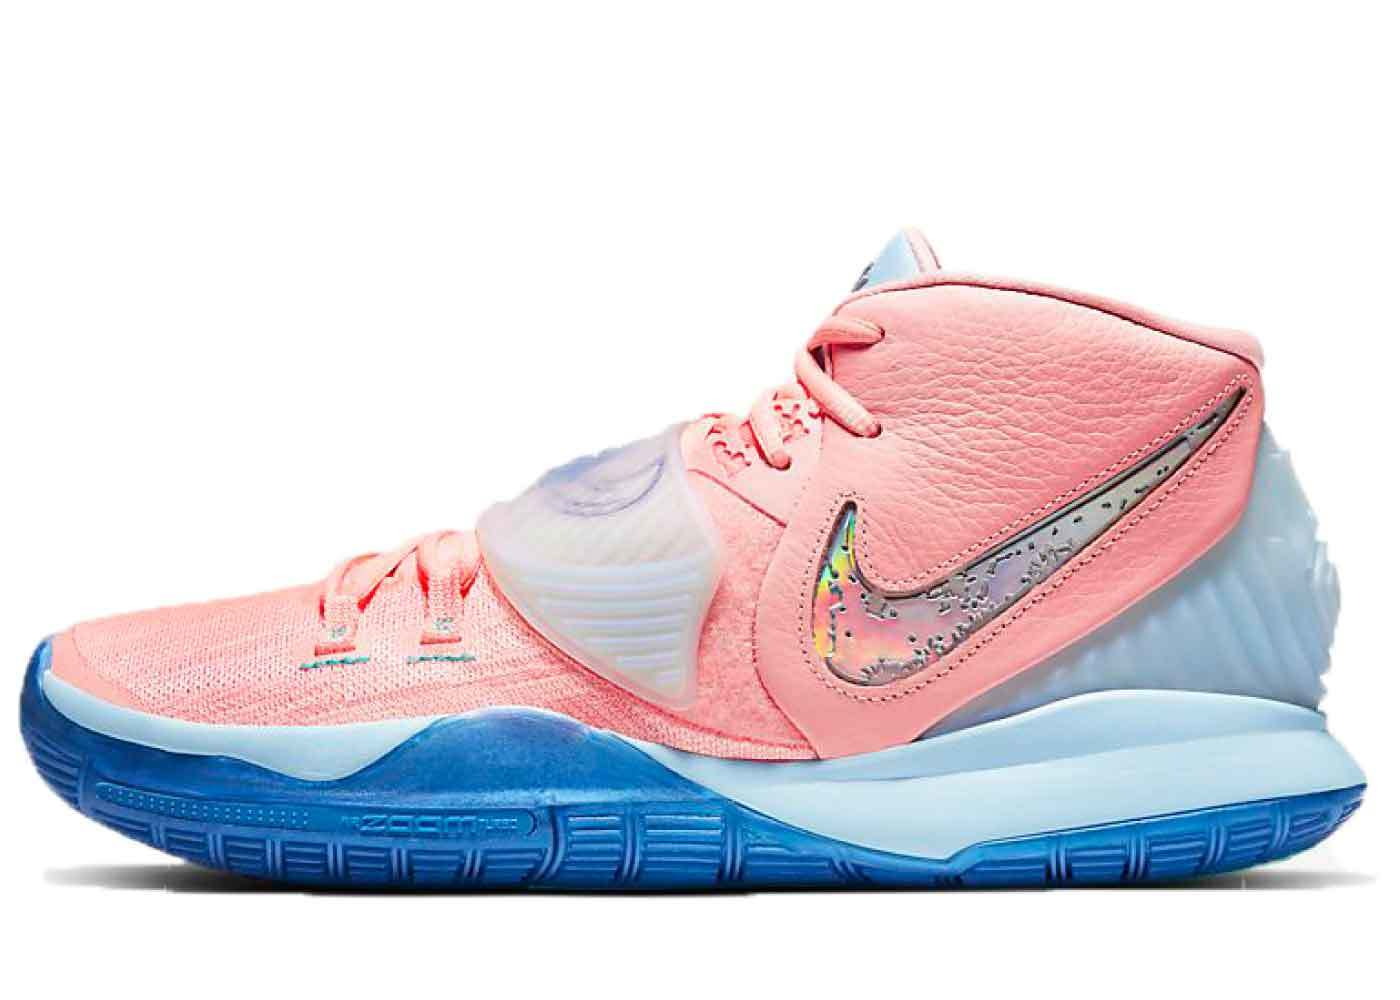 Nike Kyrie 6 Concepts Pink Tintの写真